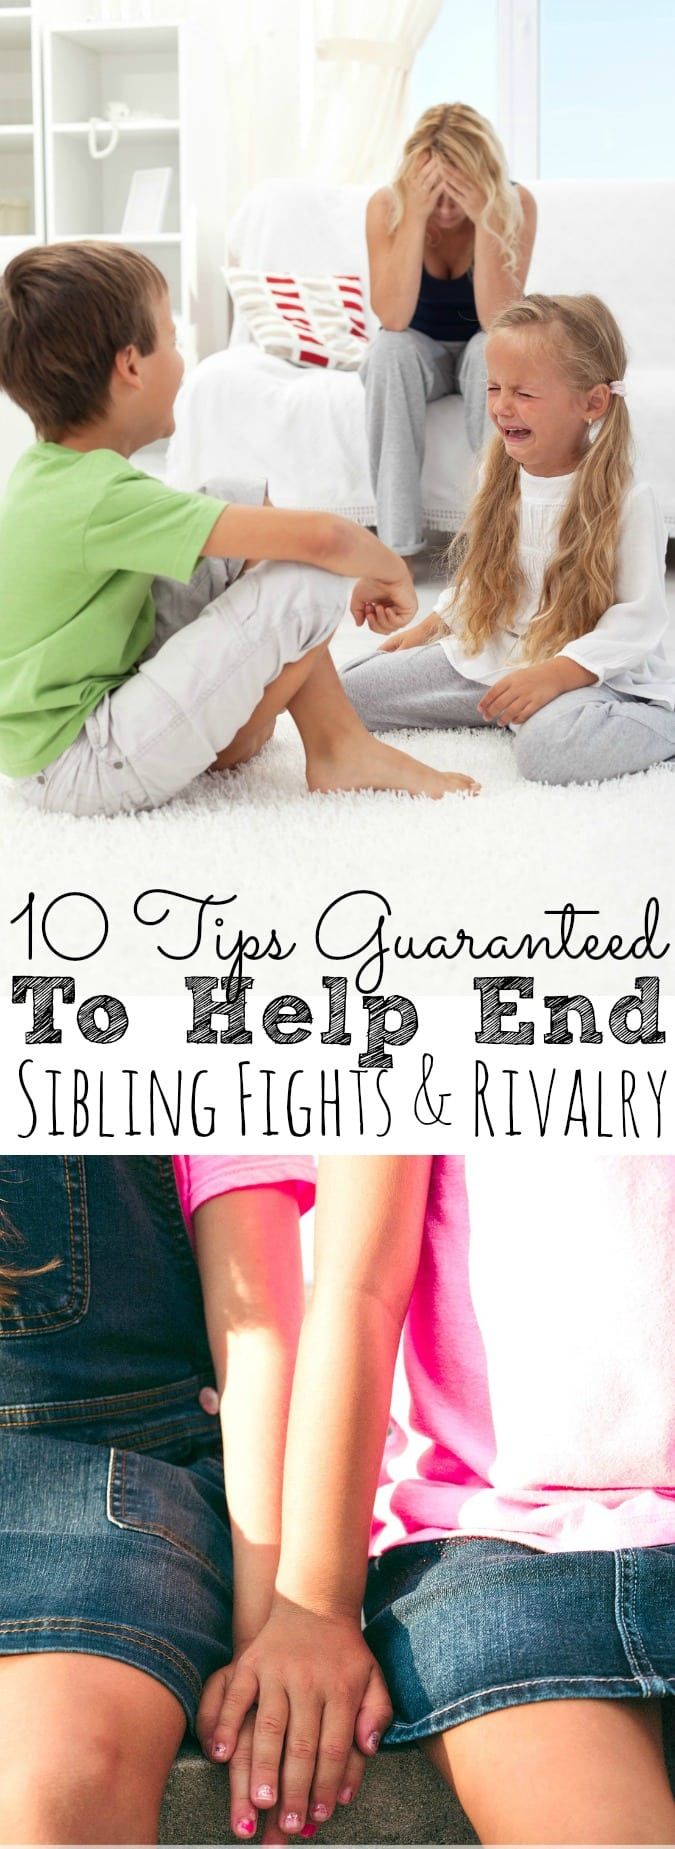 Dealing with your kids fighting can be very stressful and emotional for parents. That's why I'm sharing Sibling Fighting Solutions | 10 Tips Guaranteed To Help End Kids Arguing in your home! - simplytodaylife.com